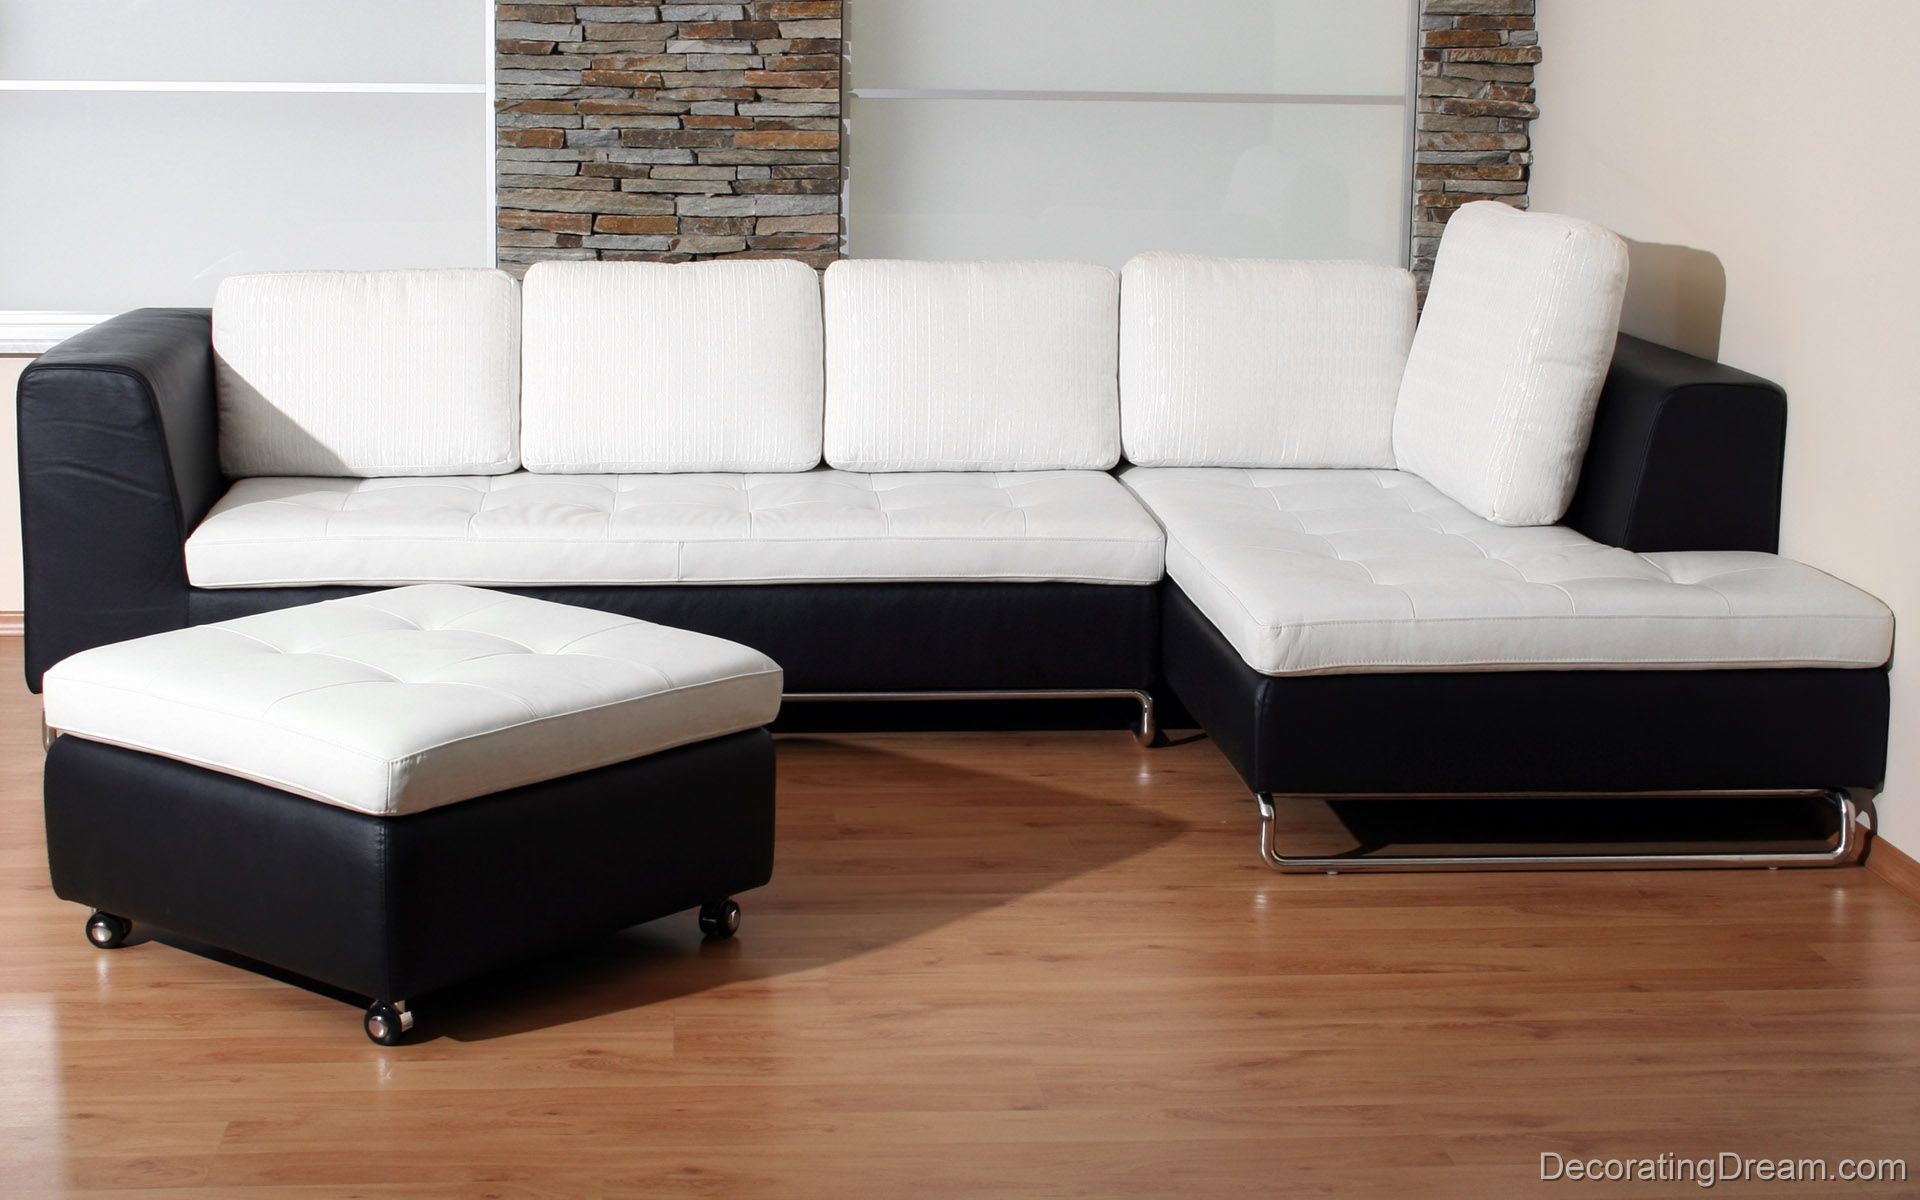 I pinned this because the white sofa would match with the black and